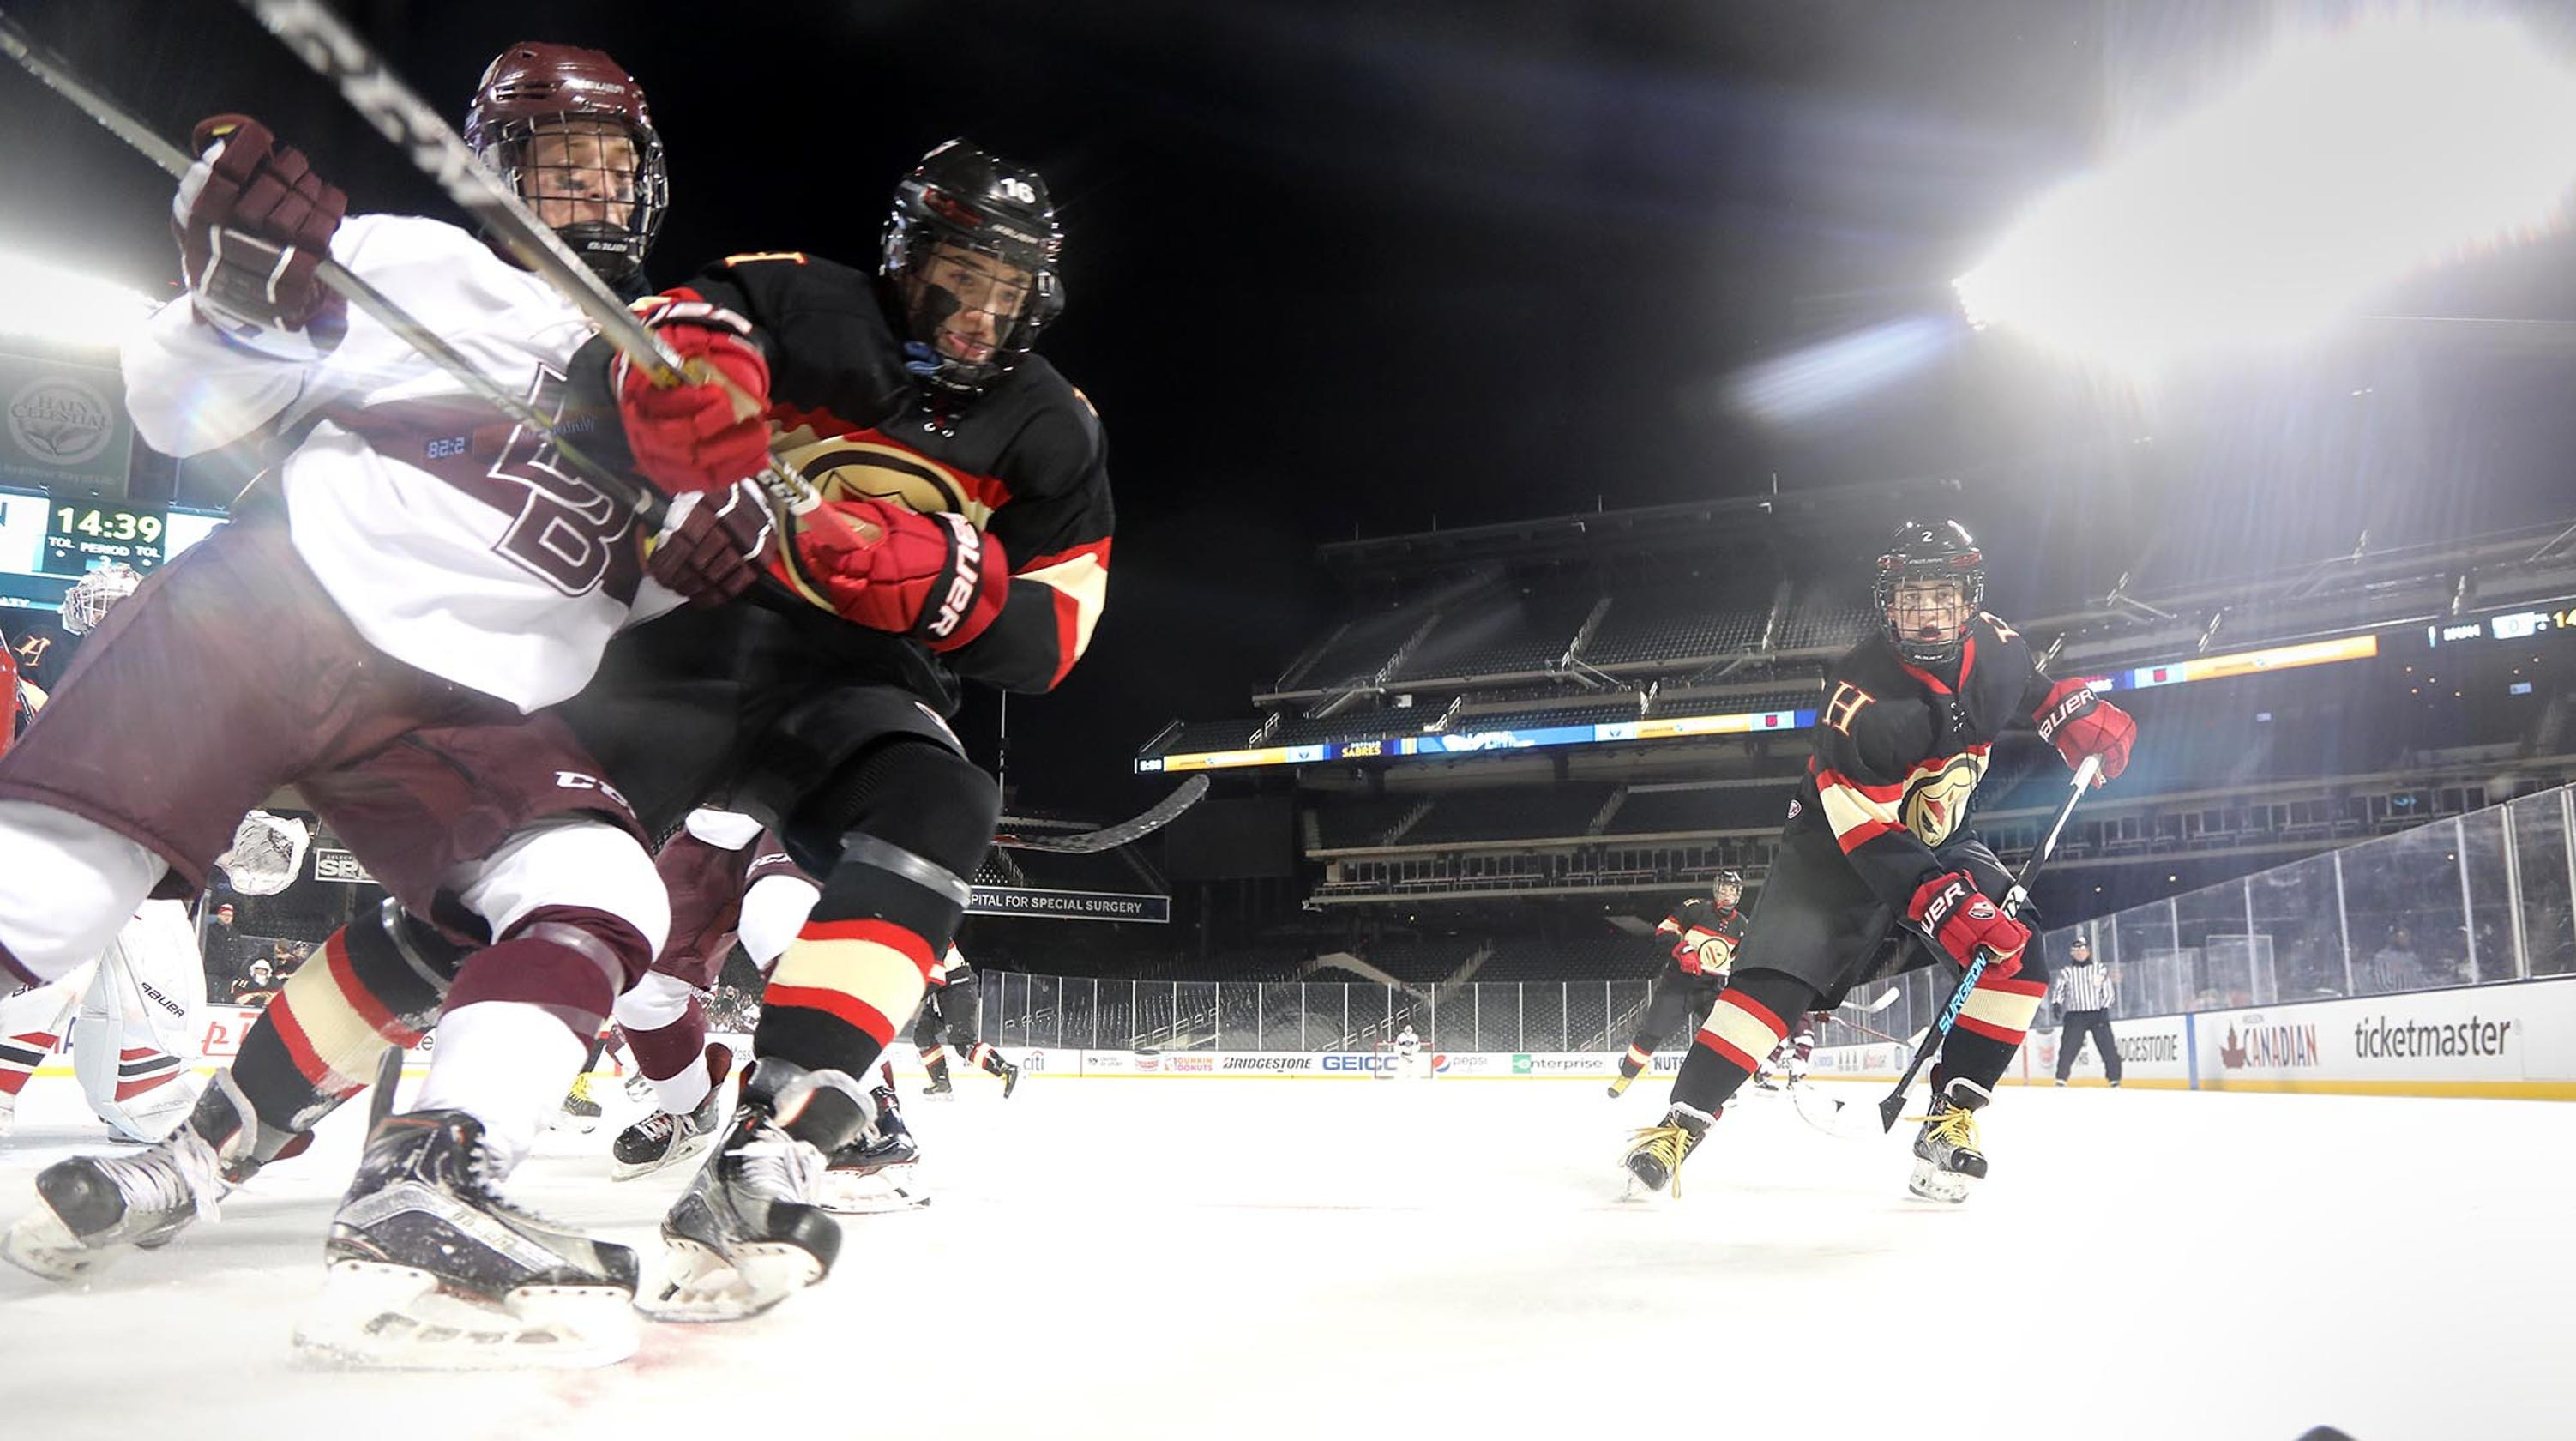 b18fc51ba72 NJ hockey  Games to watch in North Jersey on Dec. 21-23